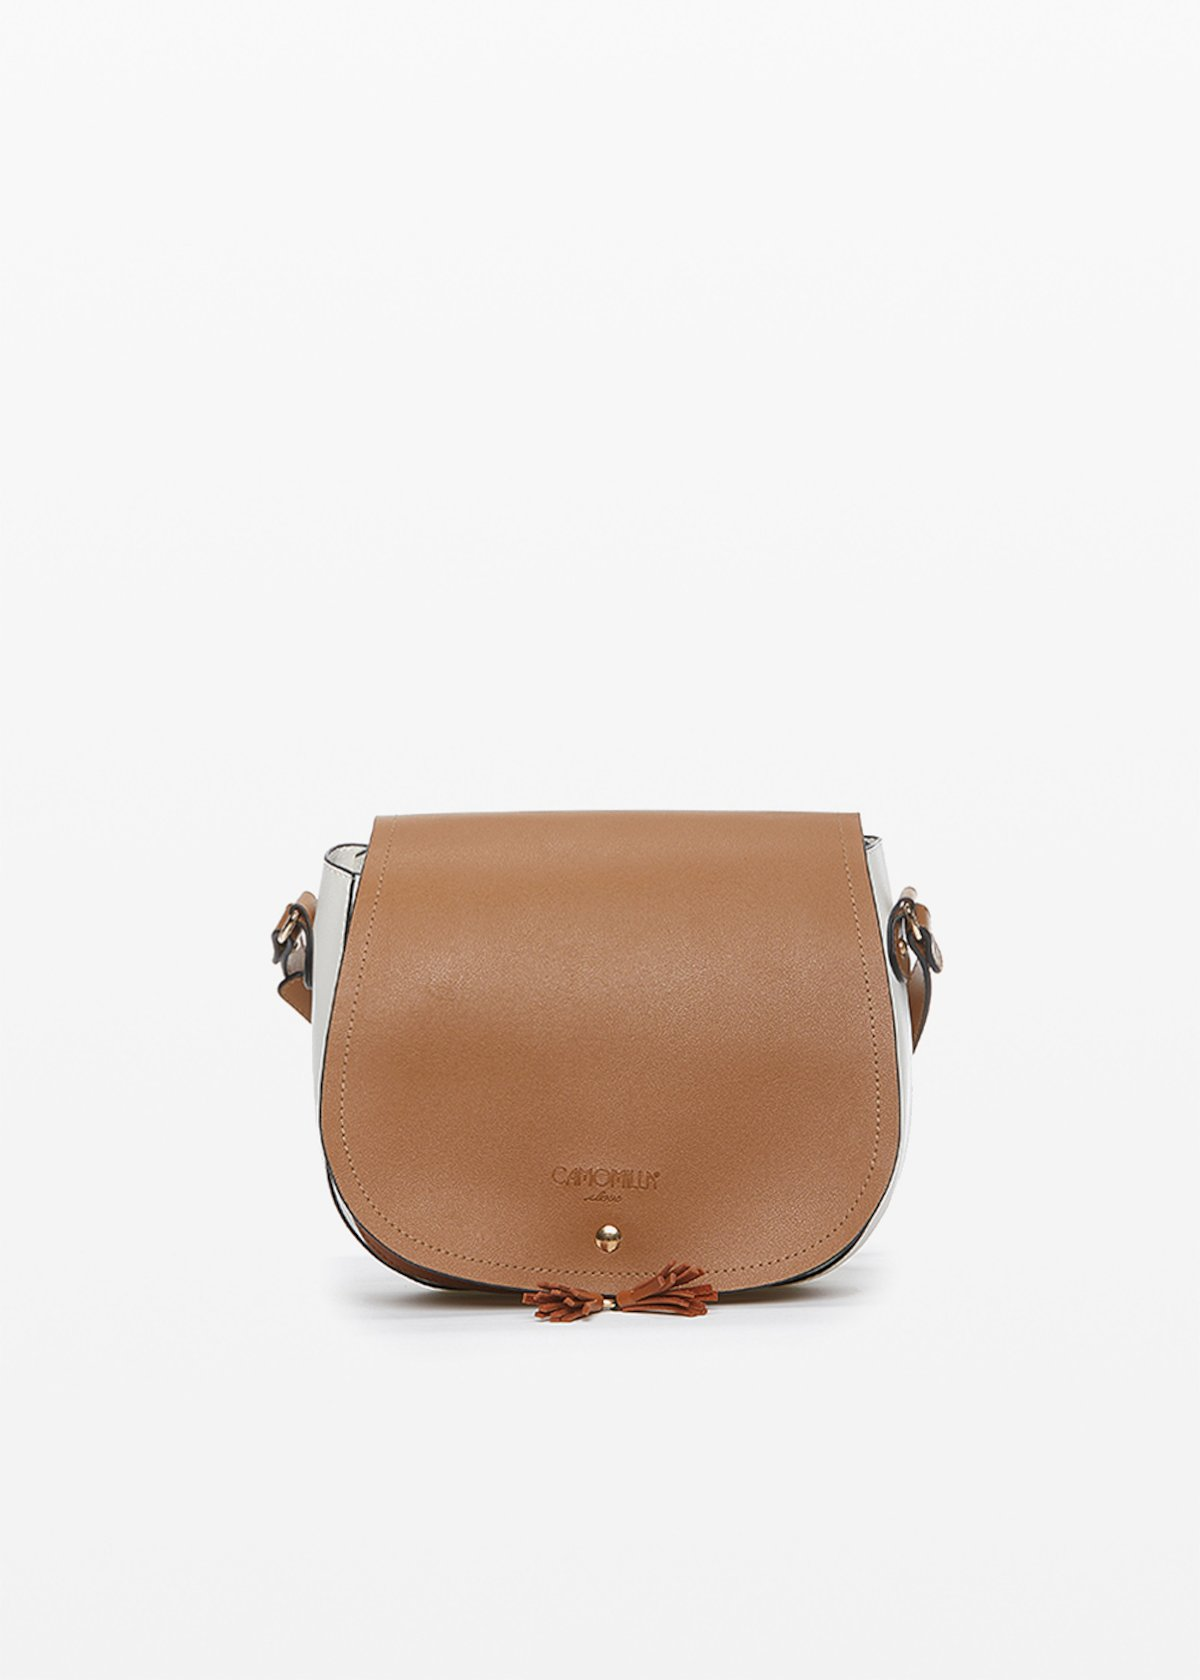 Boppy cross-body bag in bicolor eco-leather with contrasting leaf and micro-nappa decoration - Lion / White - Woman